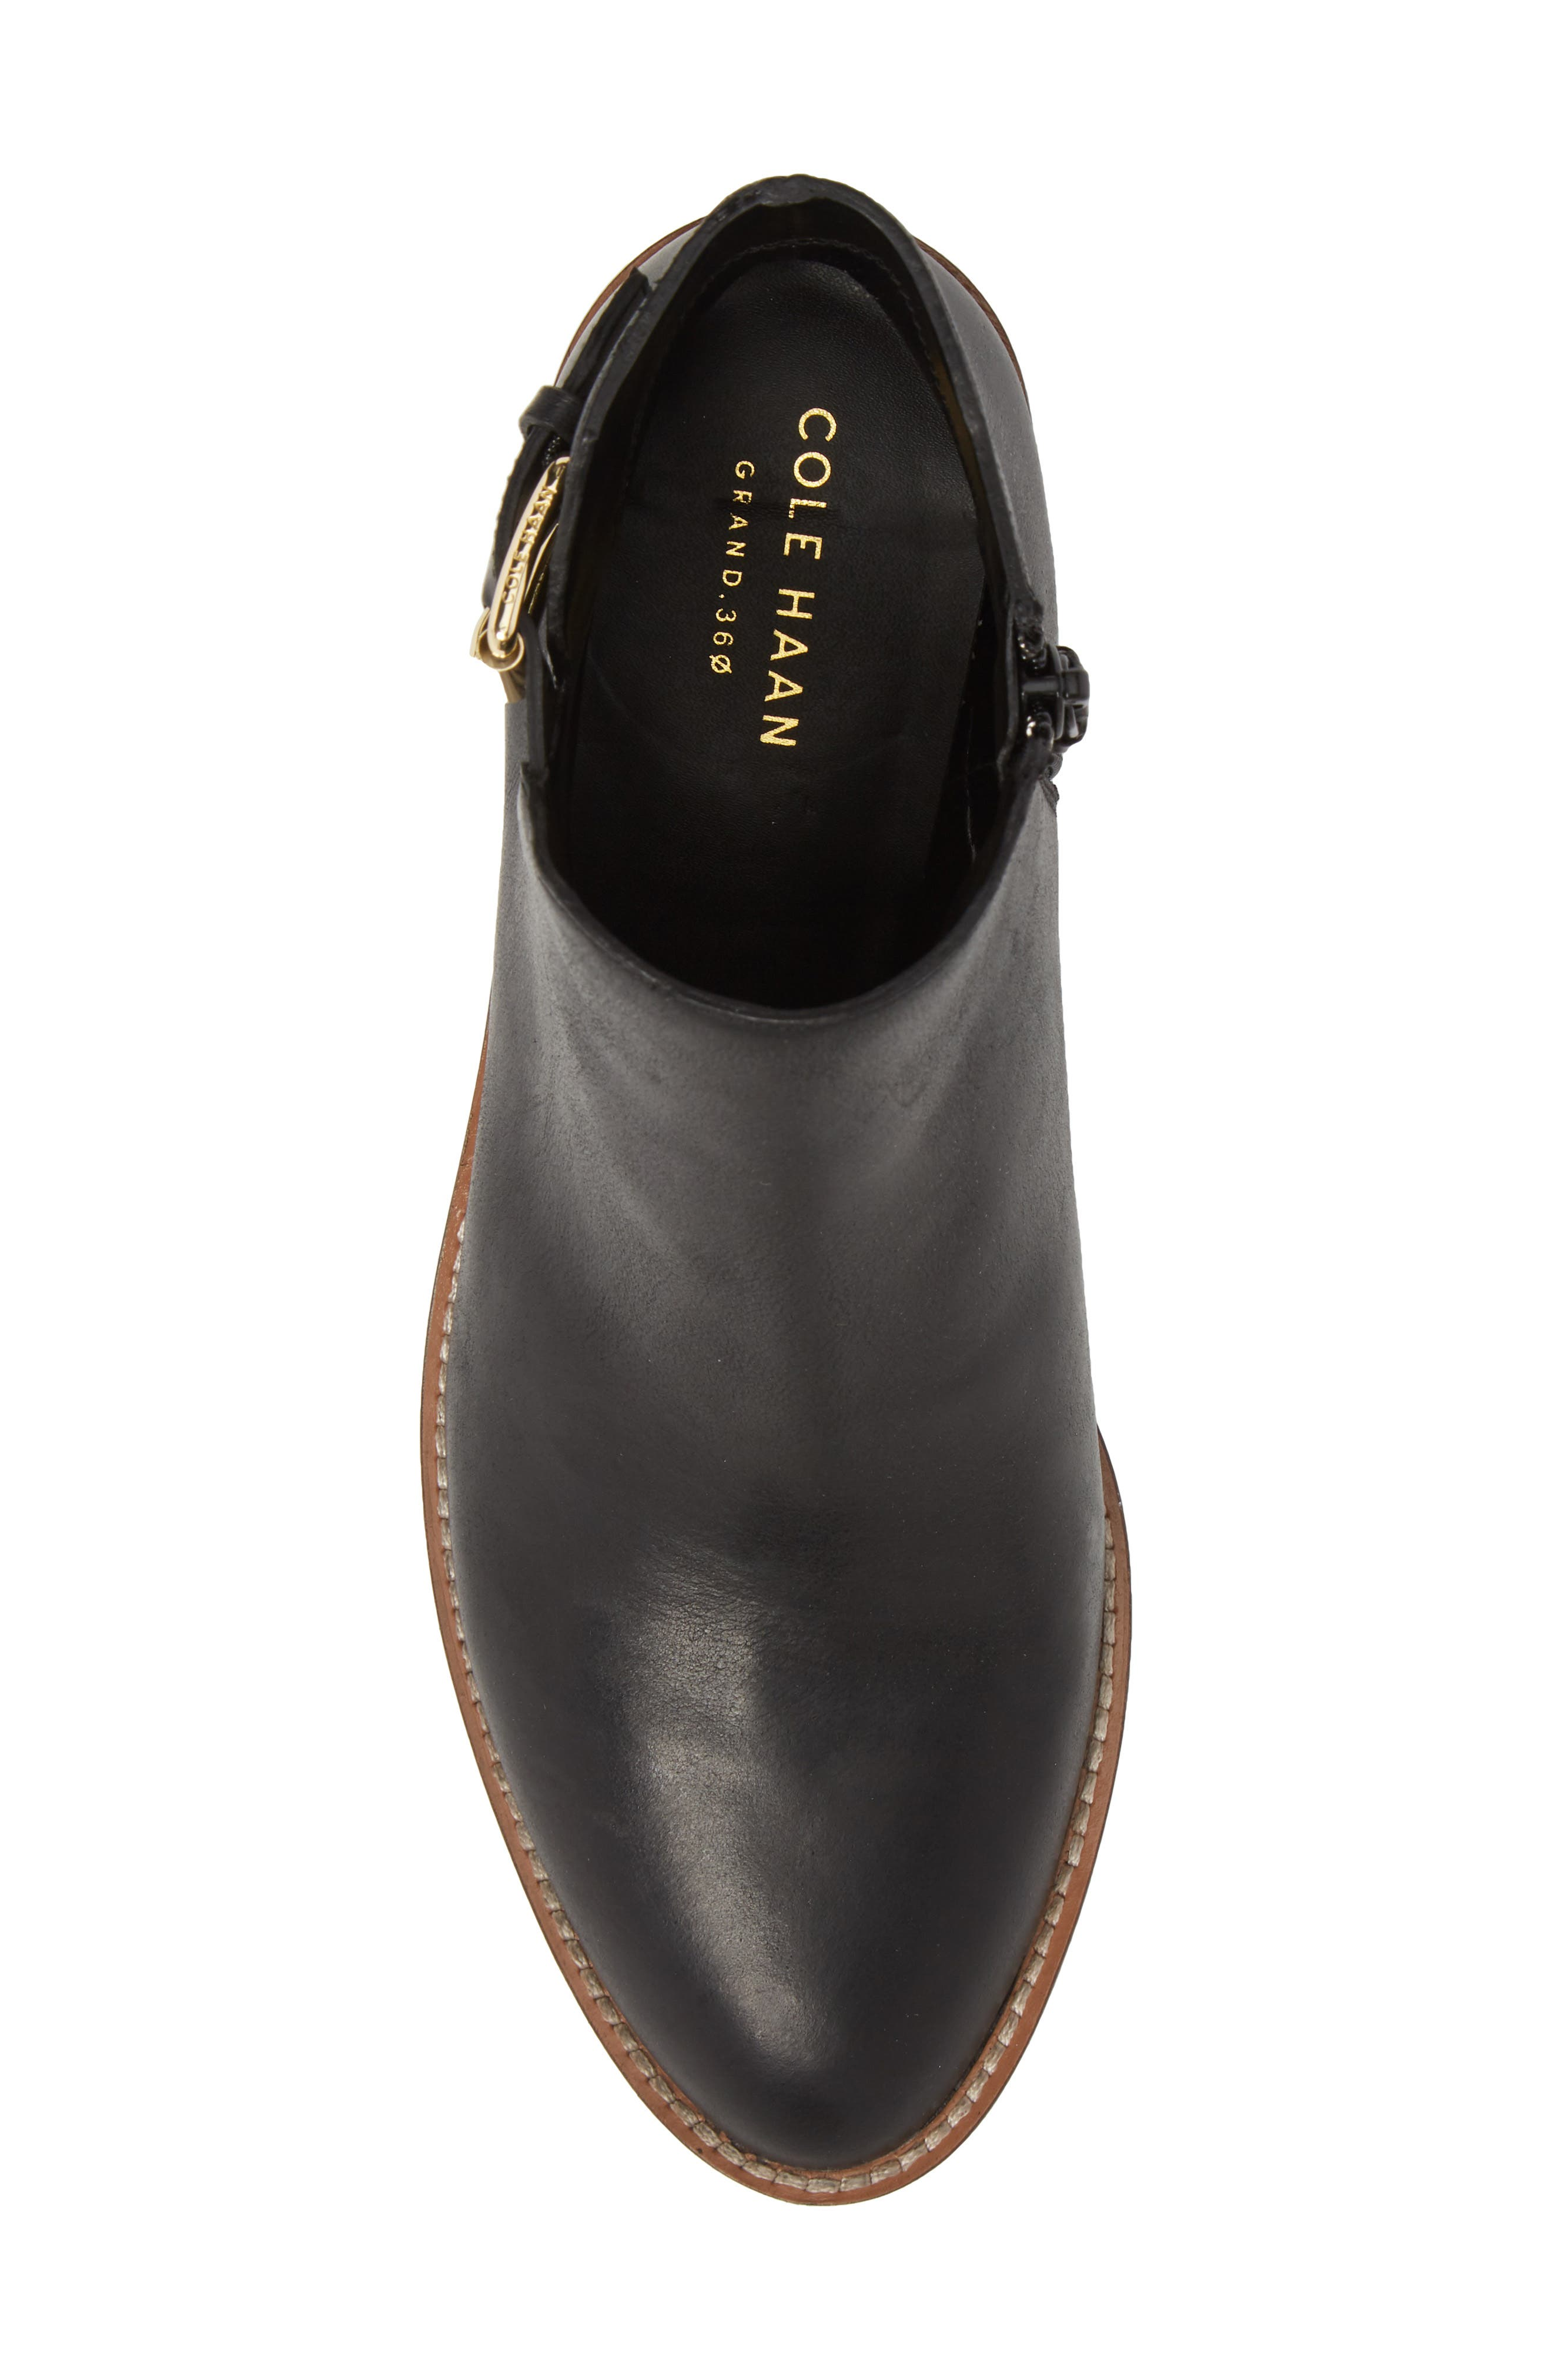 COLE HAAN, Harrington Grand Buckle Bootie, Alternate thumbnail 5, color, BLACK LEATHER